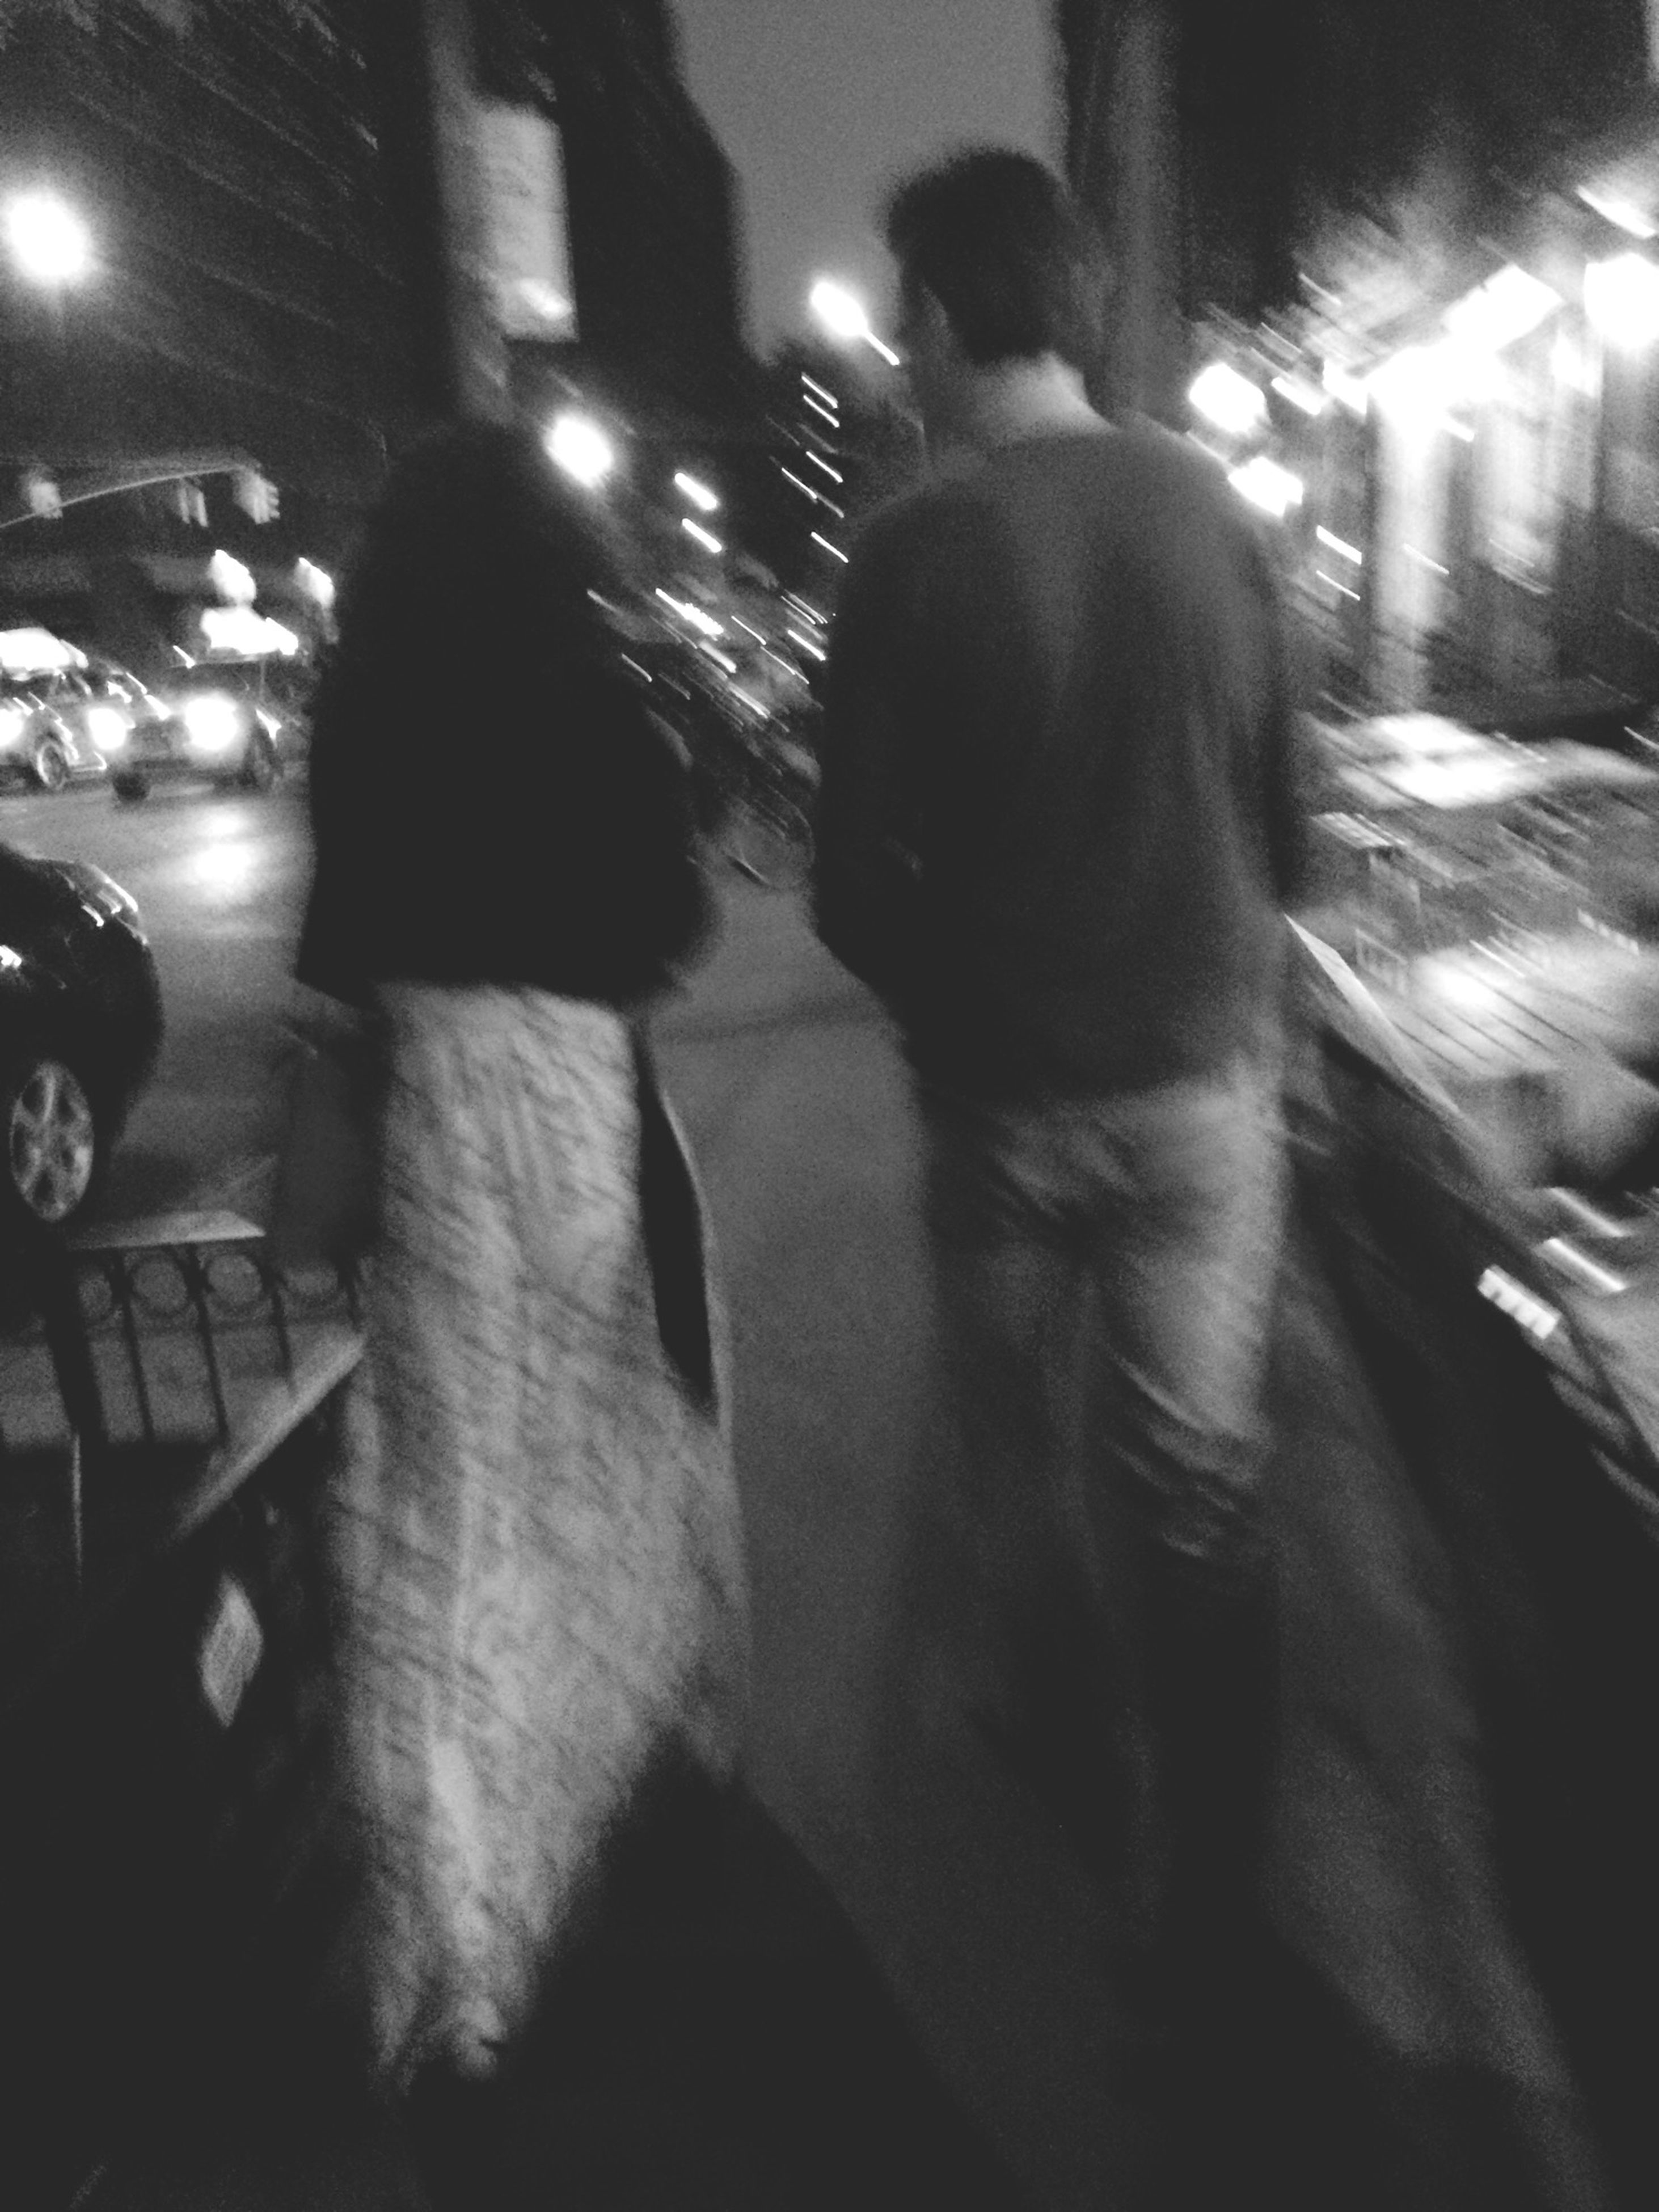 lifestyles, night, men, leisure activity, togetherness, illuminated, street, person, casual clothing, indoors, bonding, rear view, full length, walking, medium group of people, incidental people, city life